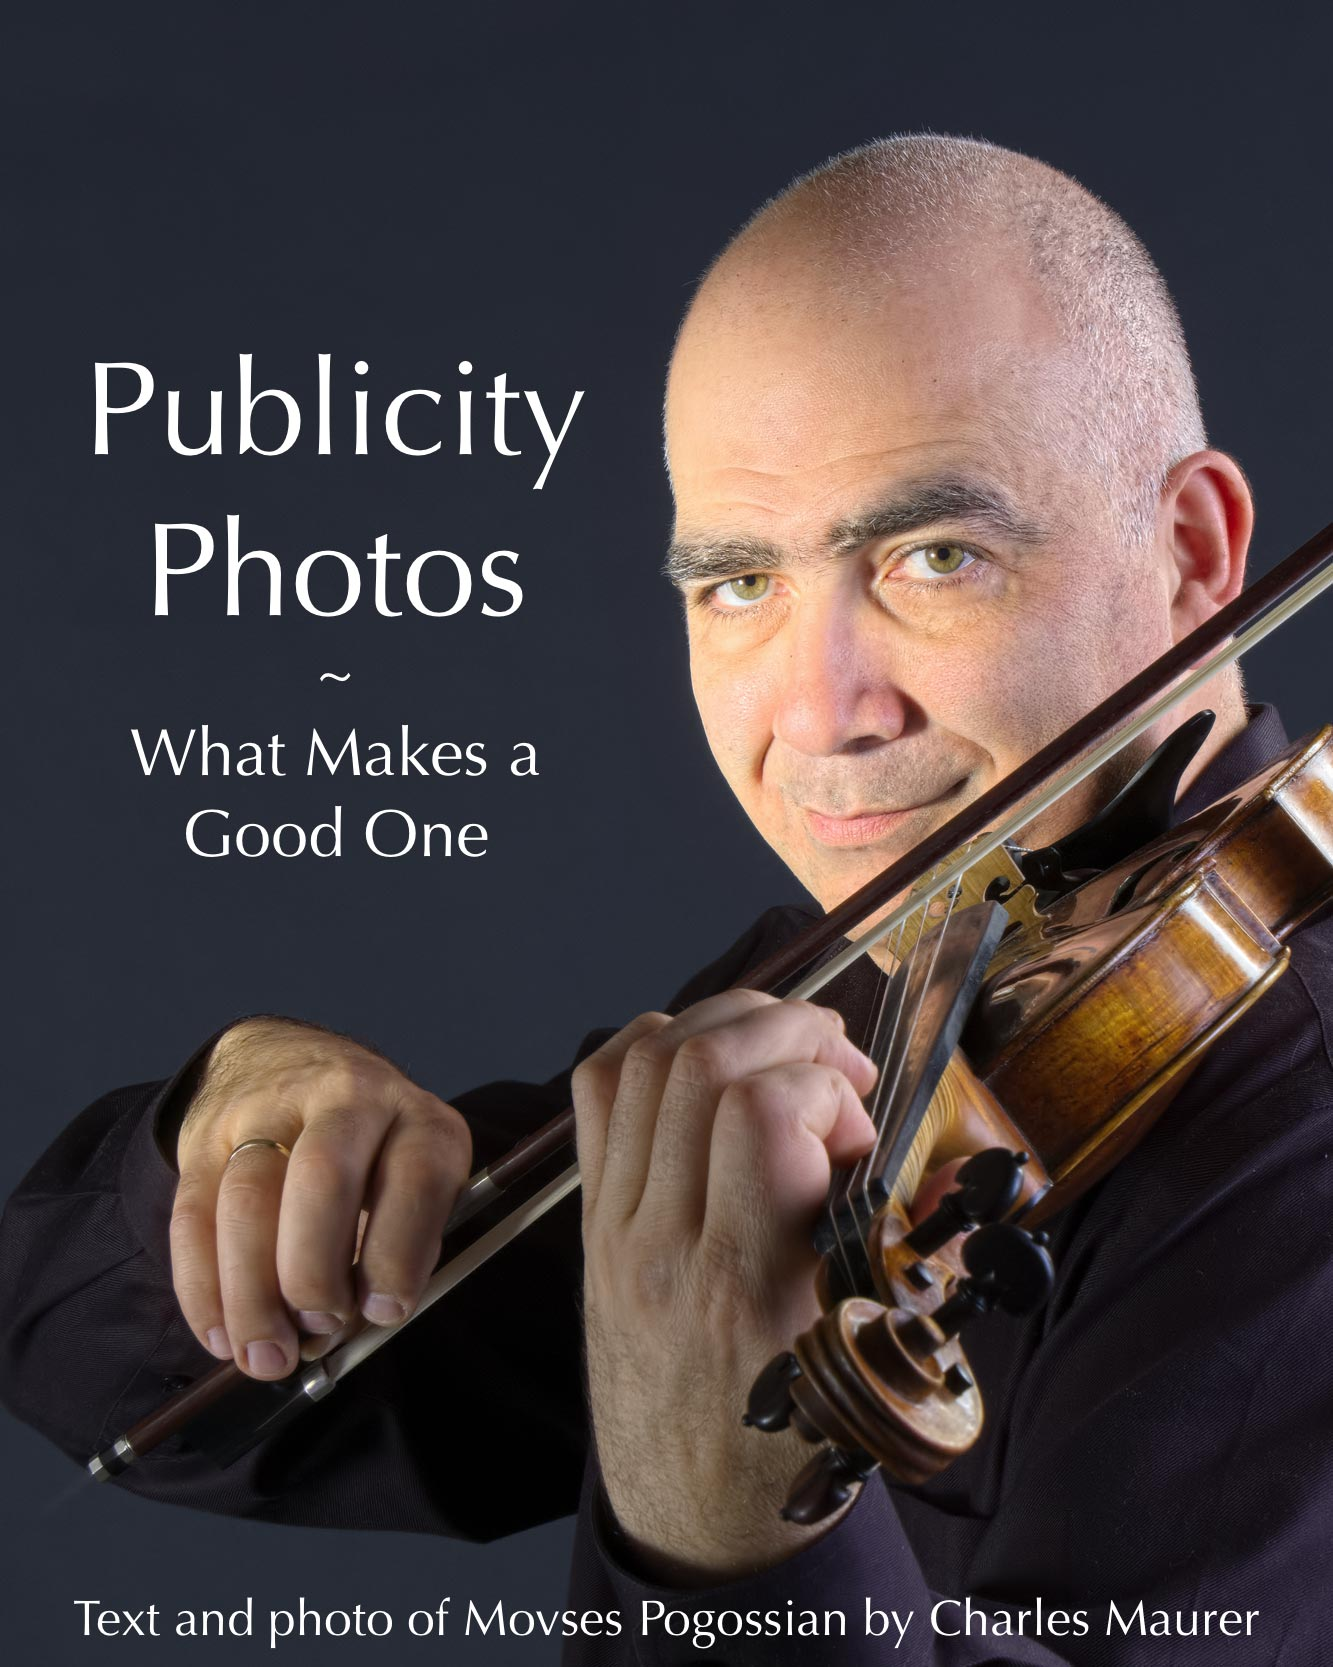 Publicity Photos - What Makes a Good One